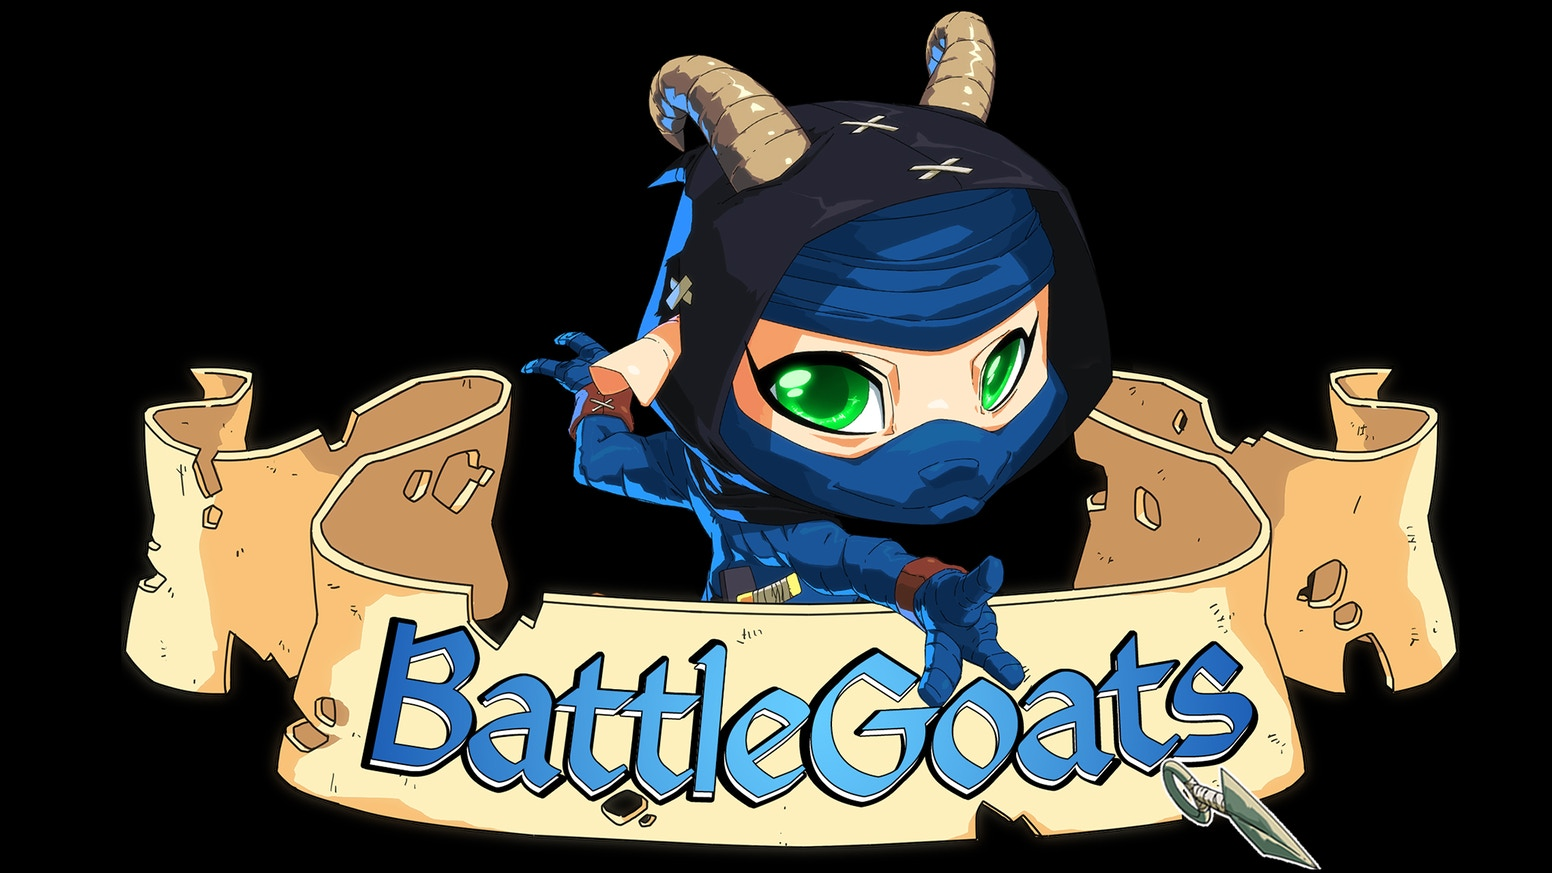 BattleGoats is a goat filled modern combination of classic card games like Memory and War. It's easy, fast, and fun for 2-6 players.